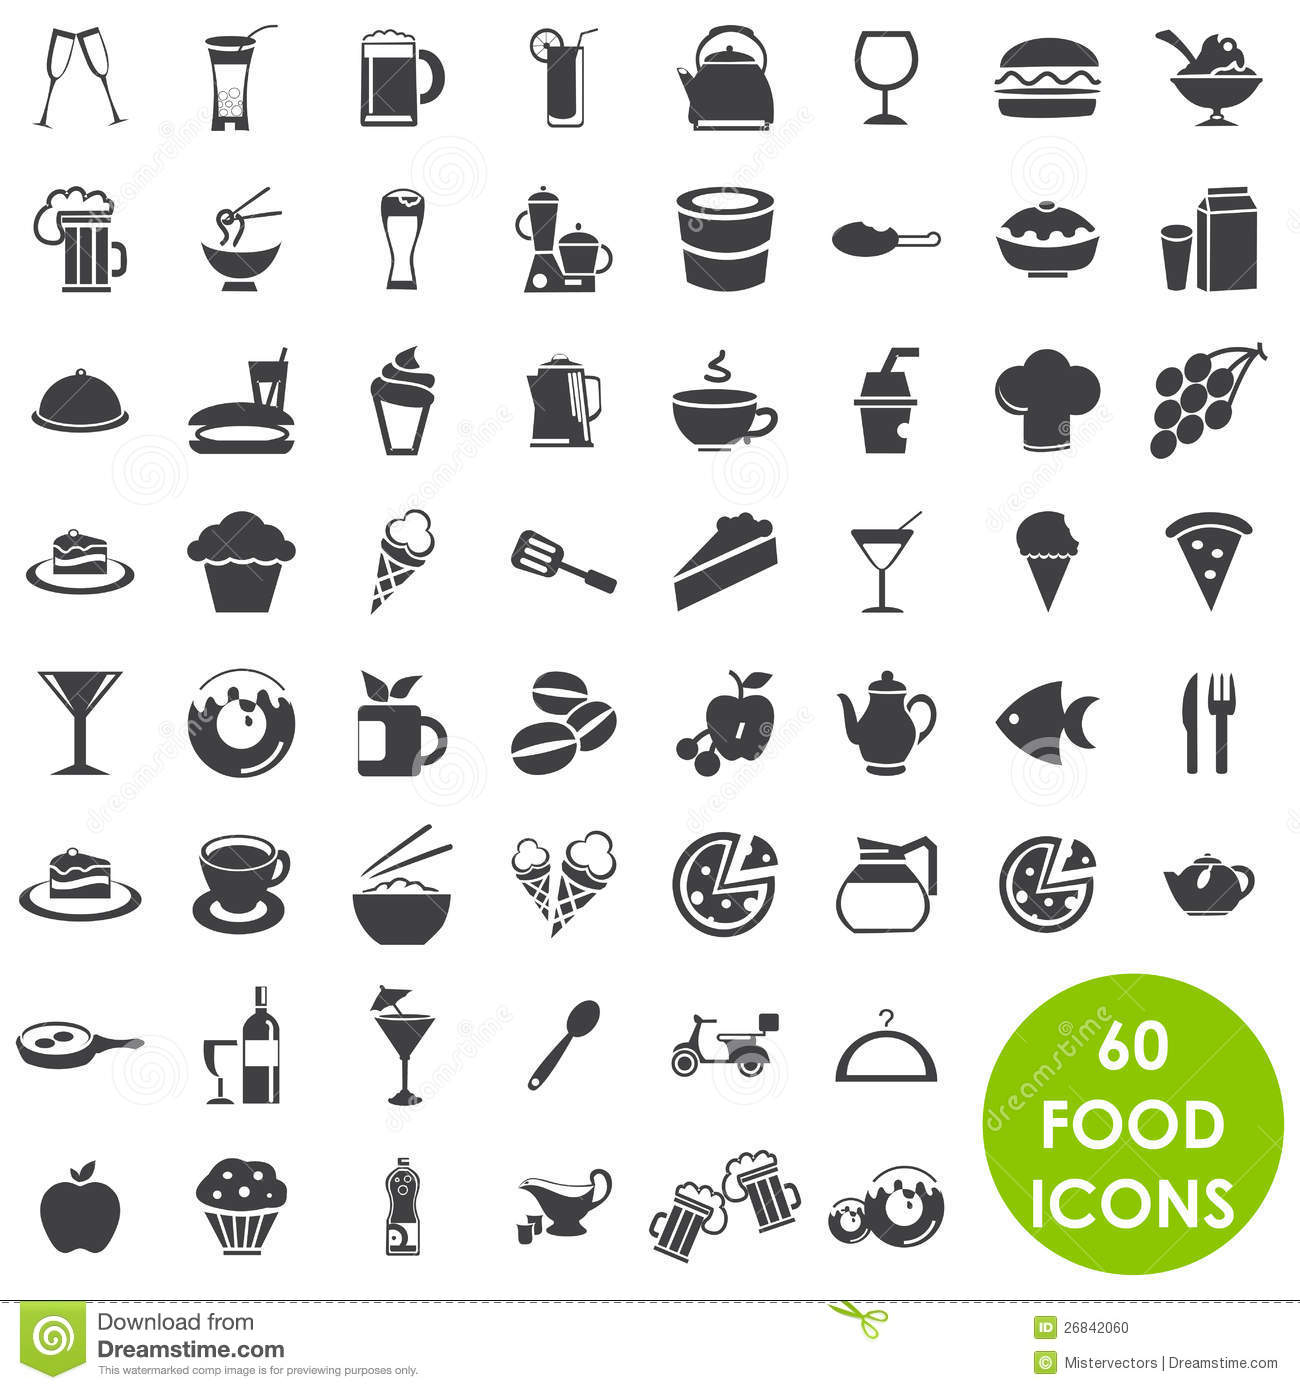 7 Food And Beverage Icon Images